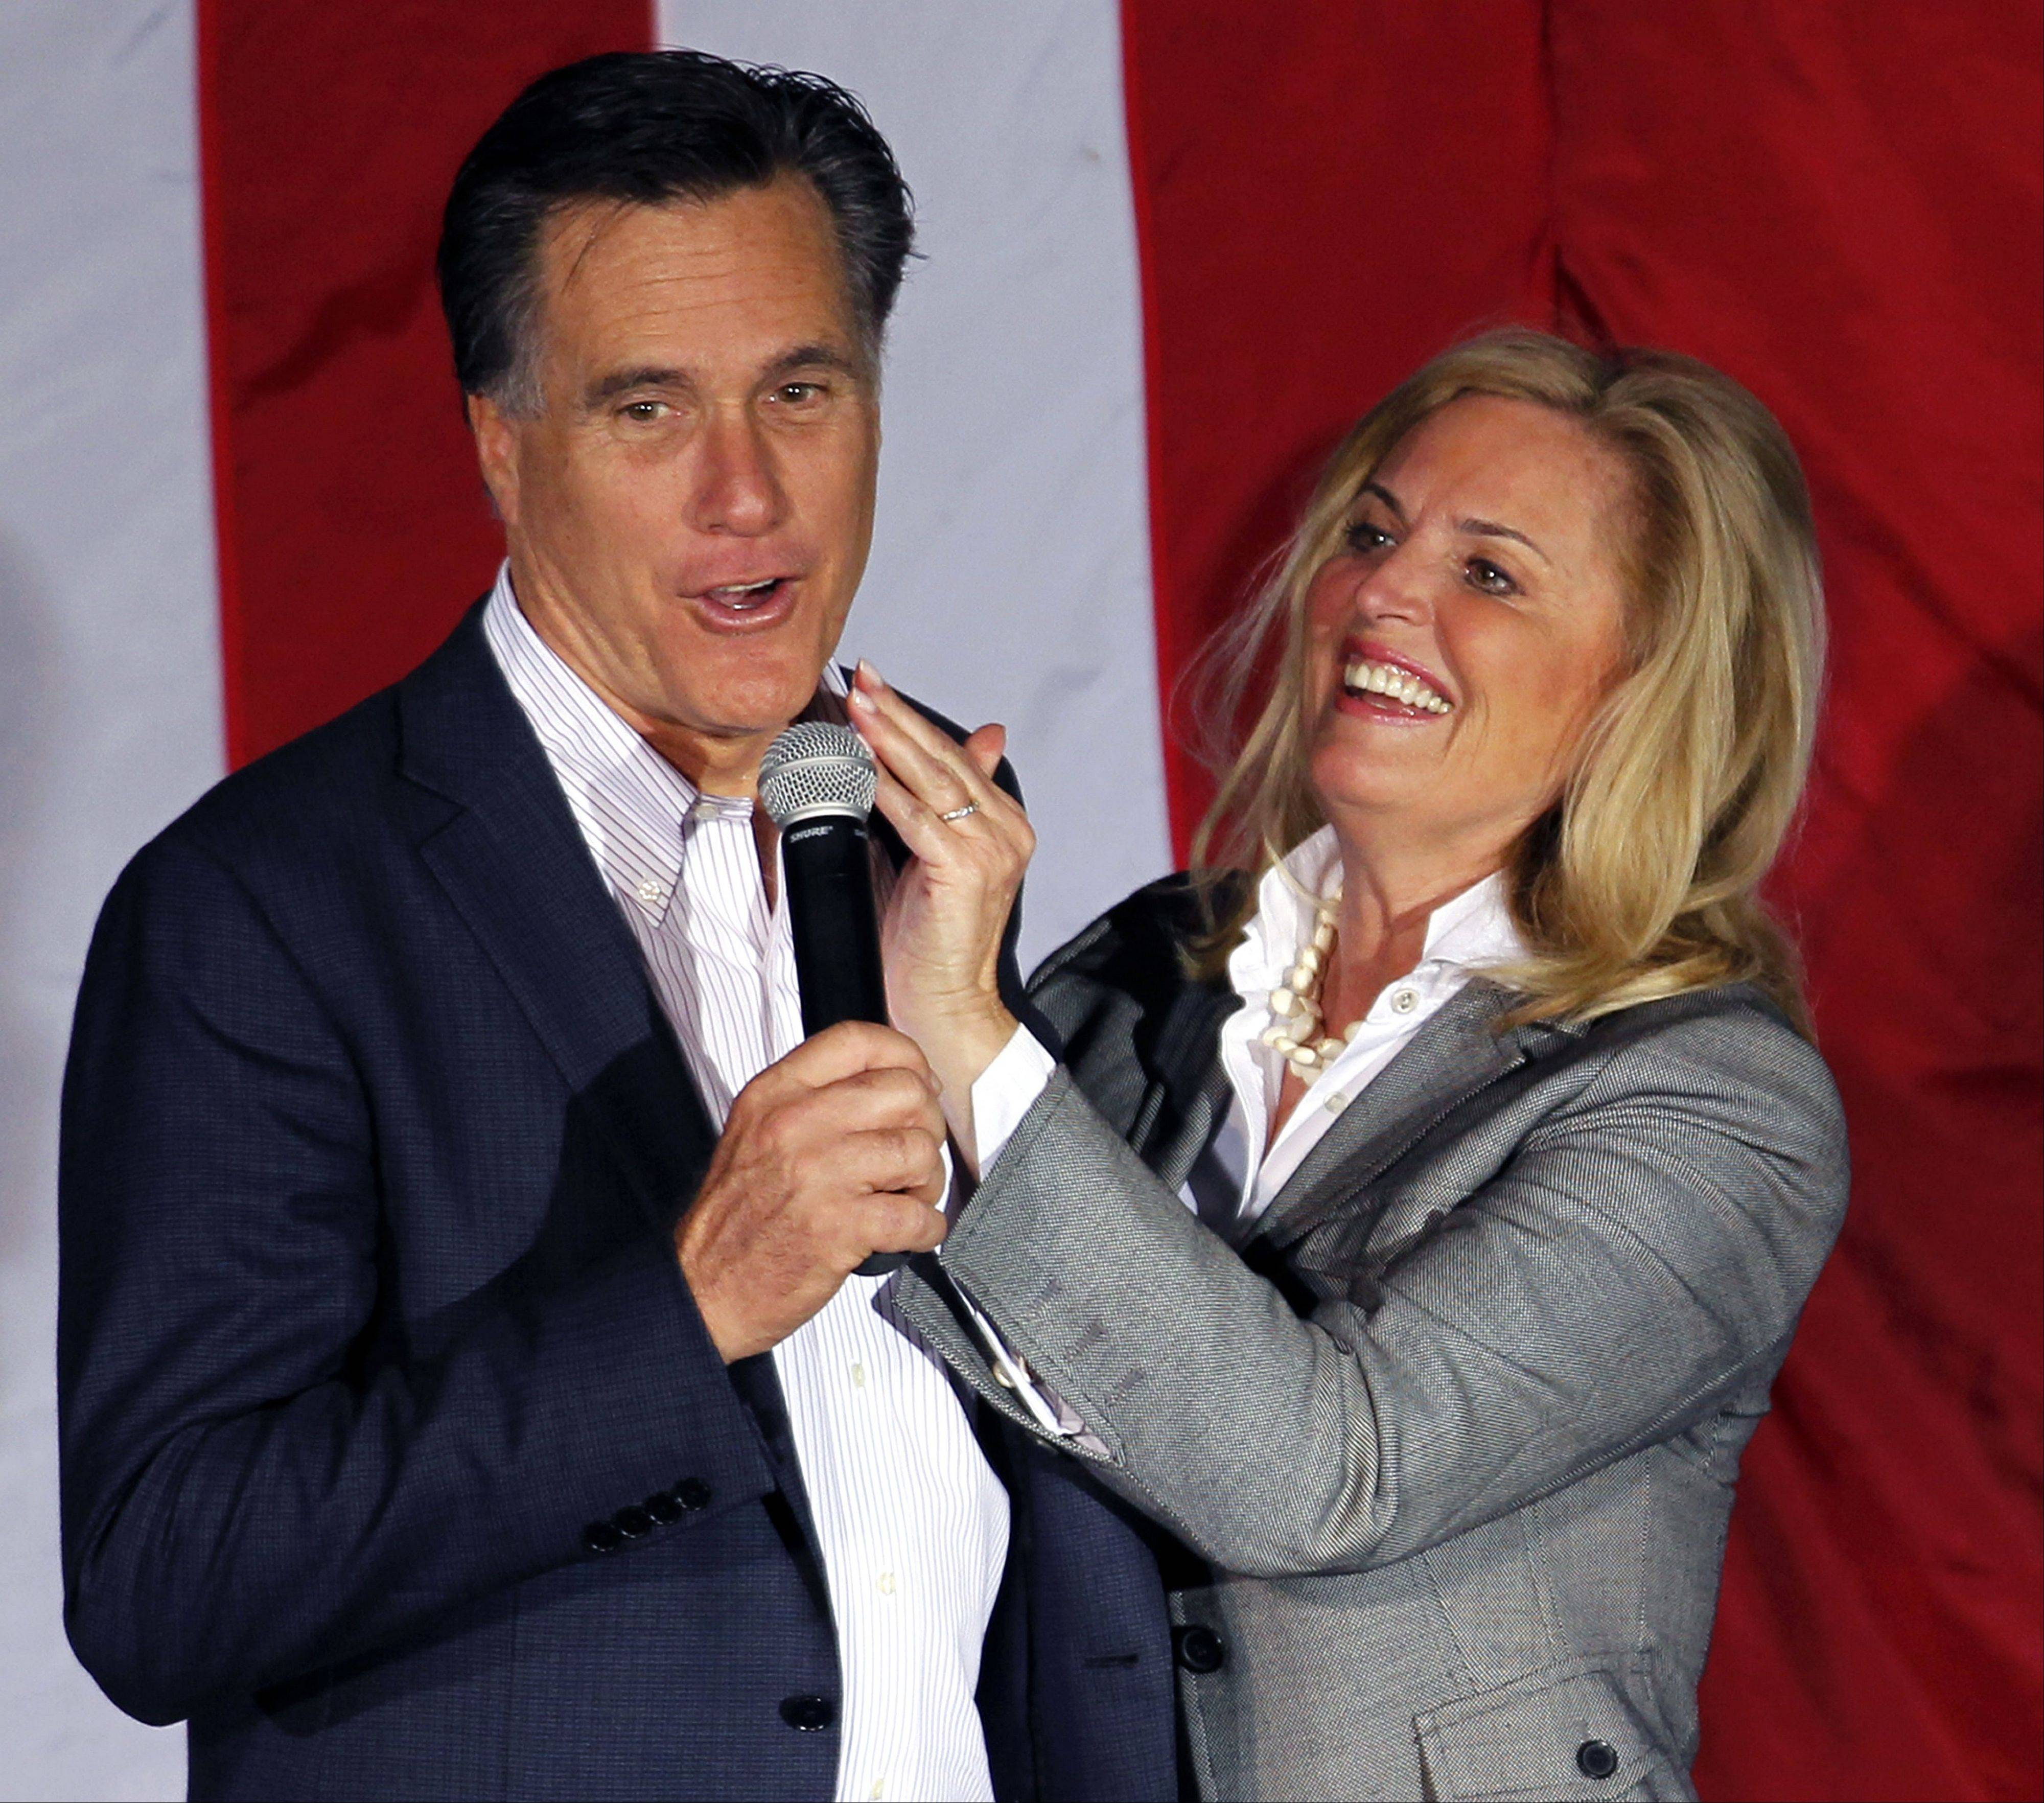 "In this March 5, 2012, file photo, Ann Romney, wife of Republican presidential candidate, former Massachusetts Gov. Mitt Romney, wipes lipstick off his face after kissing him at a campaign rally in Zanesville, Ohio. To the yearbook editors at the all-girl Kingswood School, Ann Lois Davies' destiny seemed pretty obvious. ""The first lady,"" the entry beside the stunning blond beauty's photo in the 1967 edition of ""Woodwinds"" concluded. ""Quiet and soft spoken."" The modern feminist movement was just dawning, and even some of the girls at the staid prep school in the wealthy Detroit suburb of Bloomfield Hills were feeling their oats _ if in a somewhat tame way. Charlon McMath Hibbard remembers getting a doctor's note about her feet, so she wouldn't have to wear the obligatory saddle Oxfords."